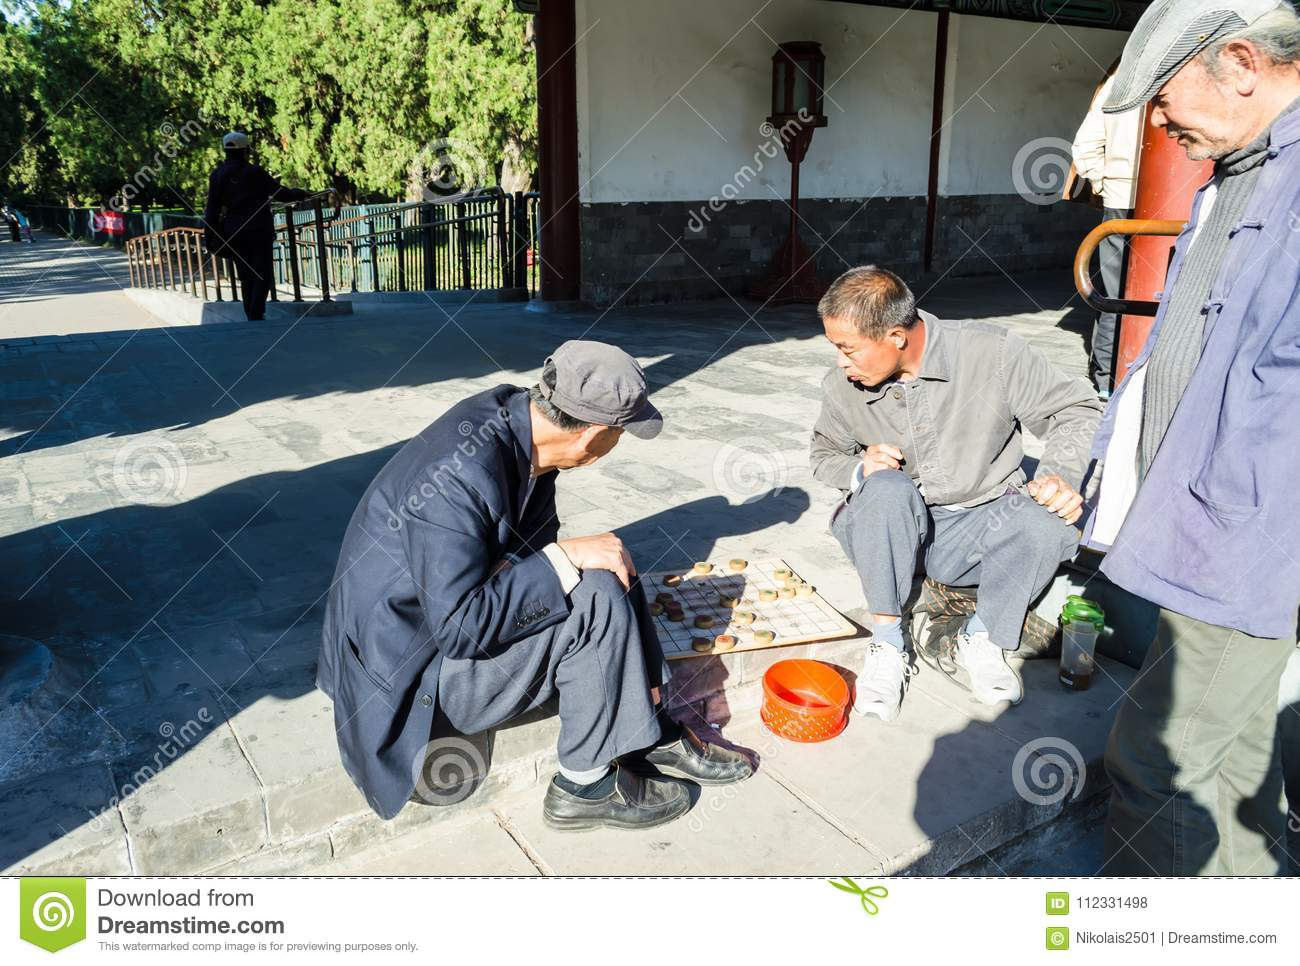 BEIJING, CHINA – October 15, 2013: men playing checkers Xiangqi - the Chinese national board game